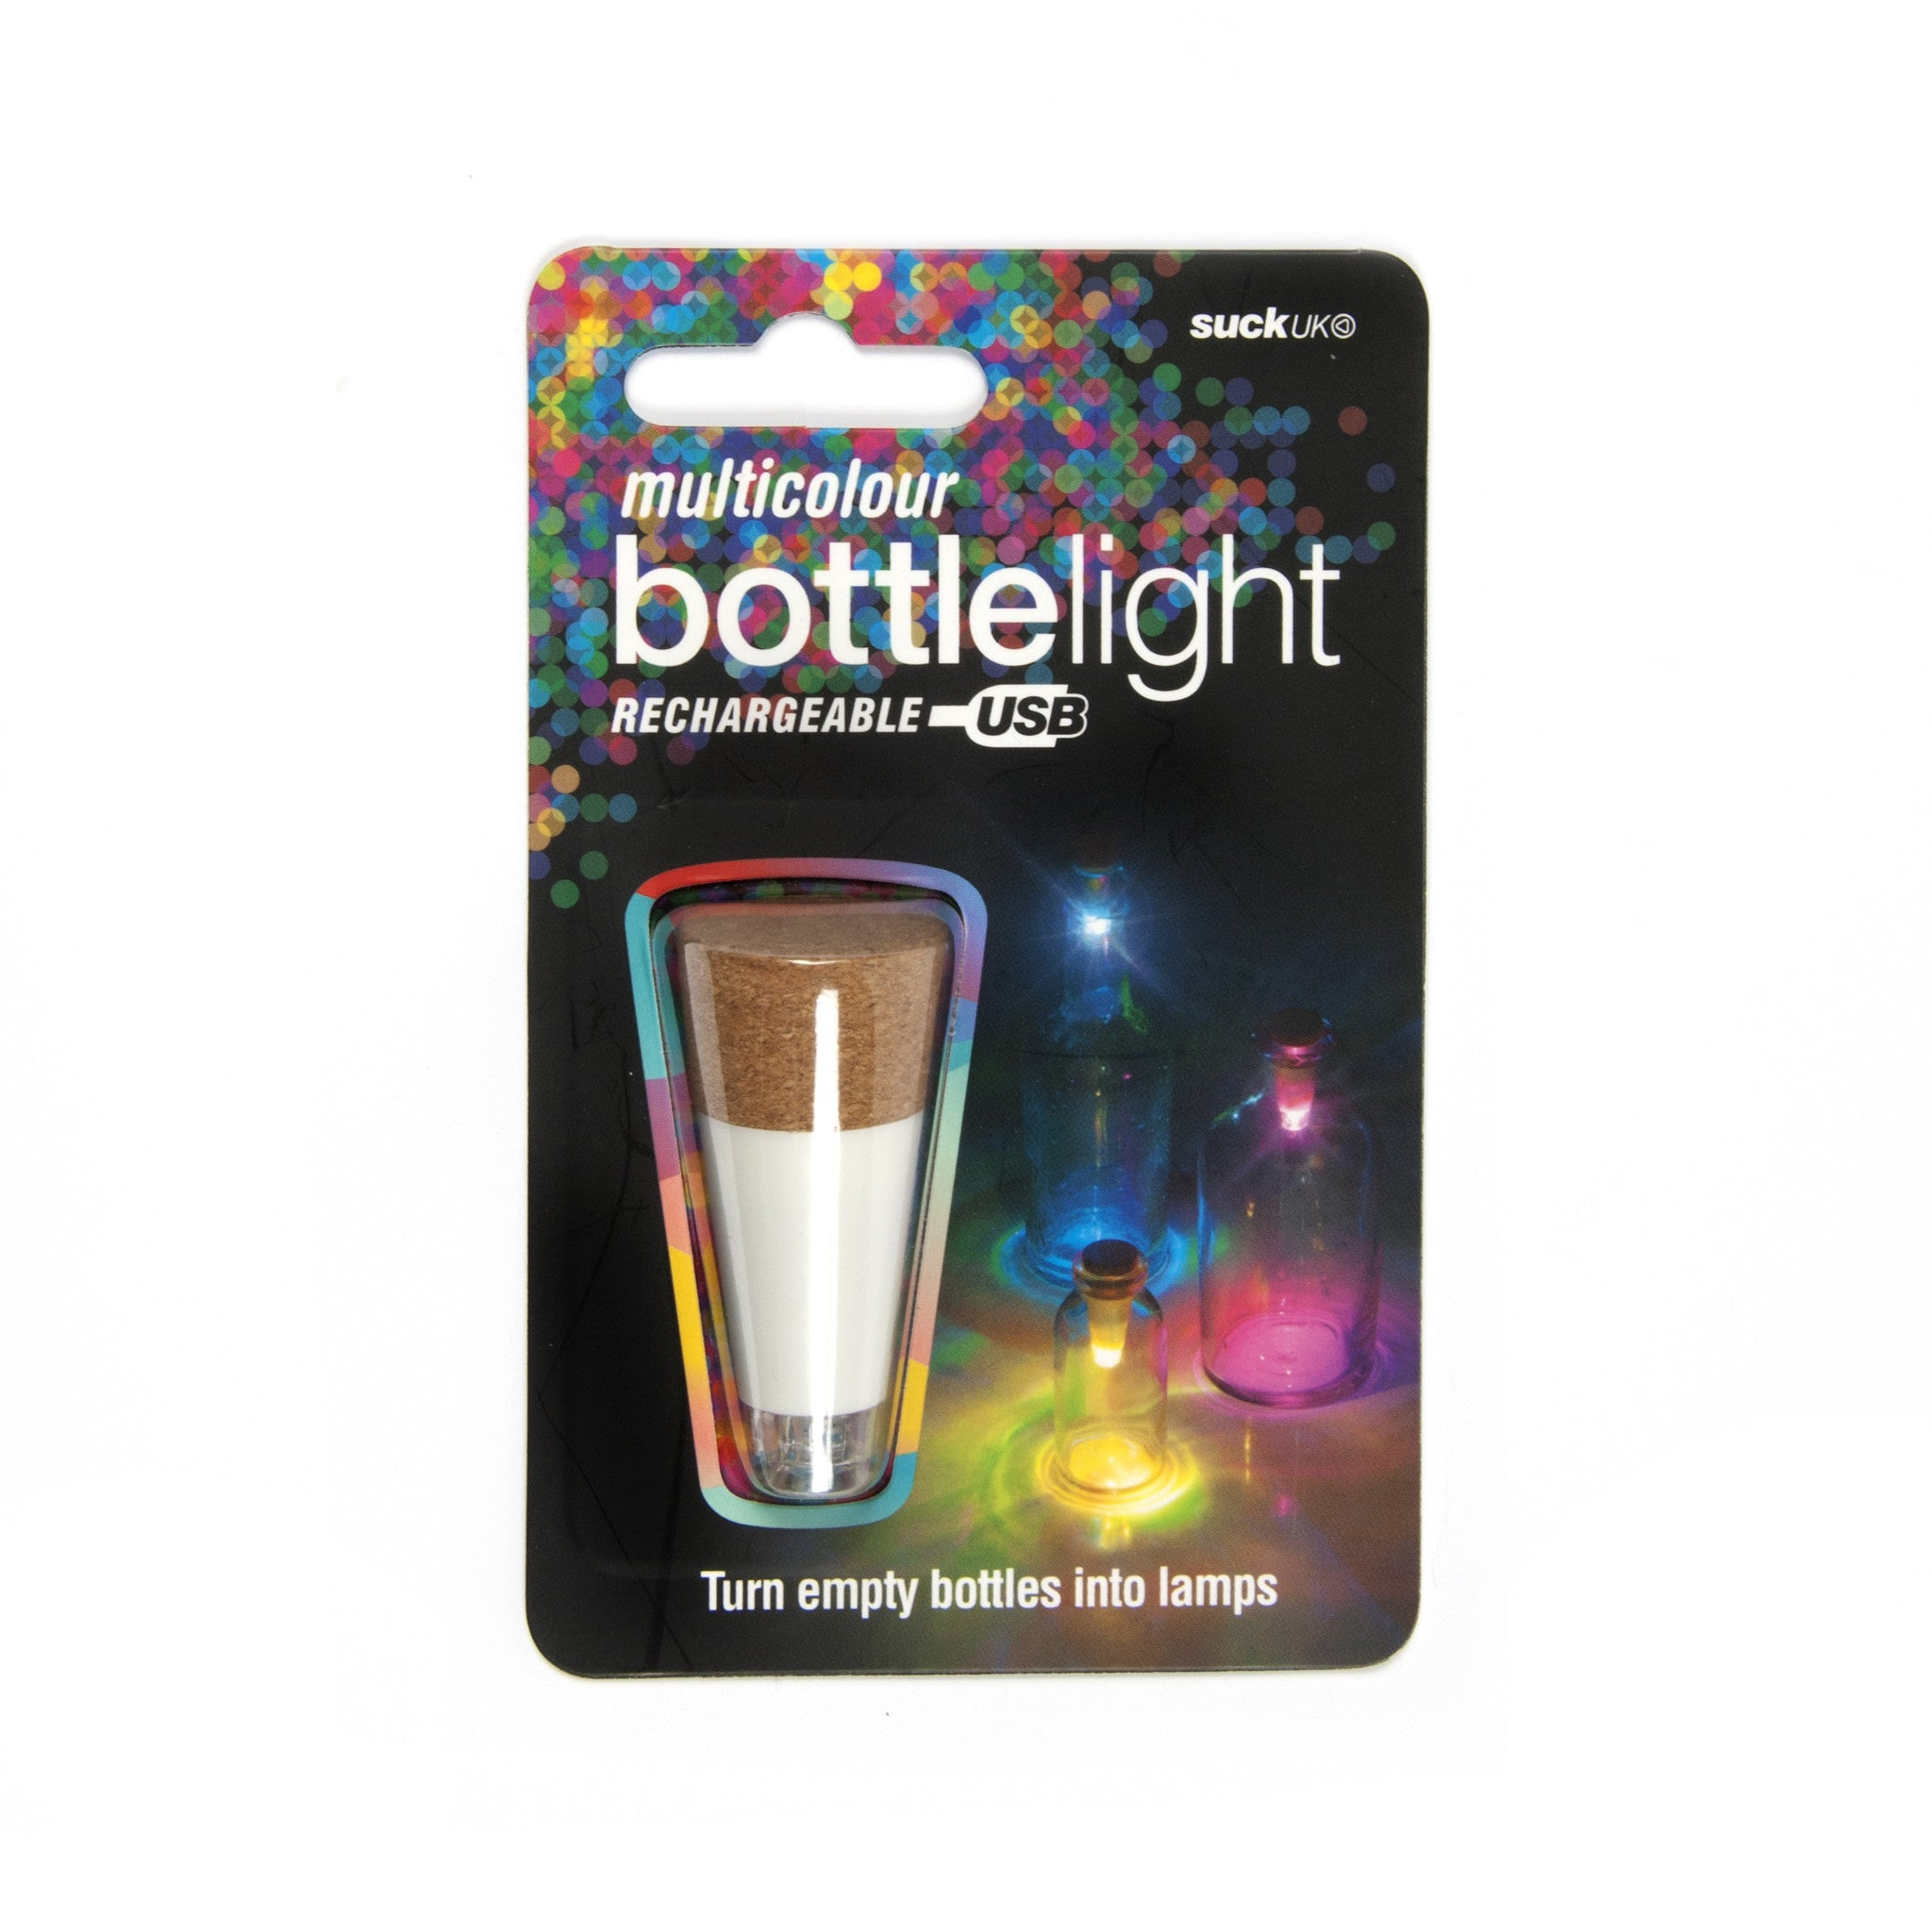 Multicolour Bottle Light Image